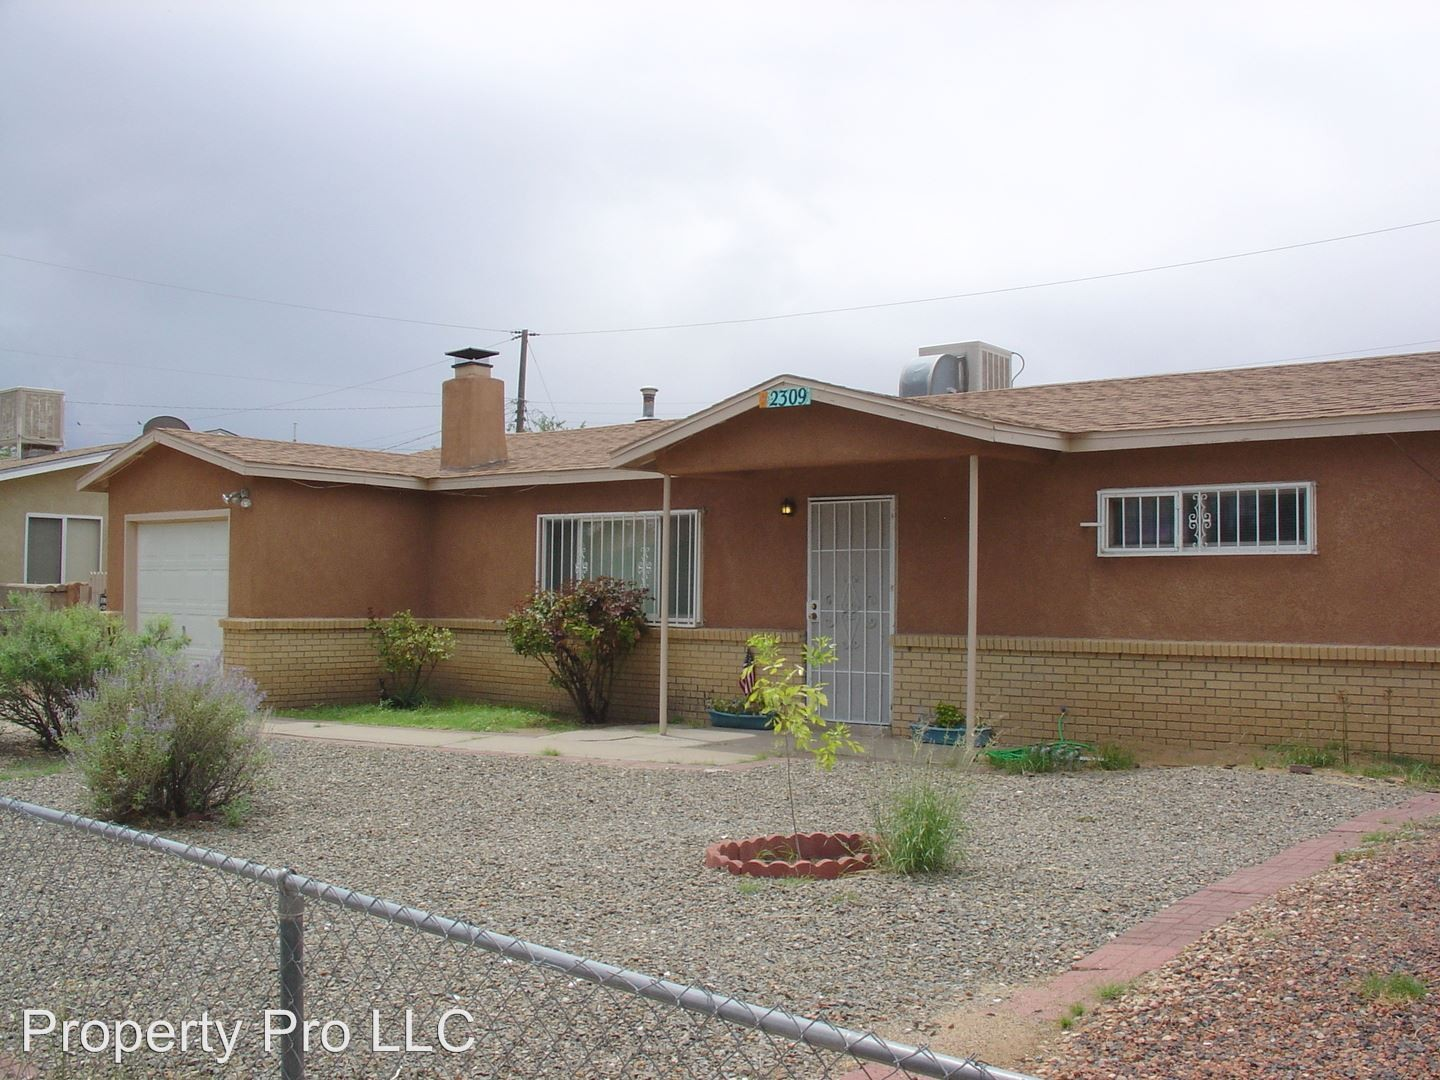 2309 hurley dr nw albuquerque nm 87120 3 bedroom house for rent for